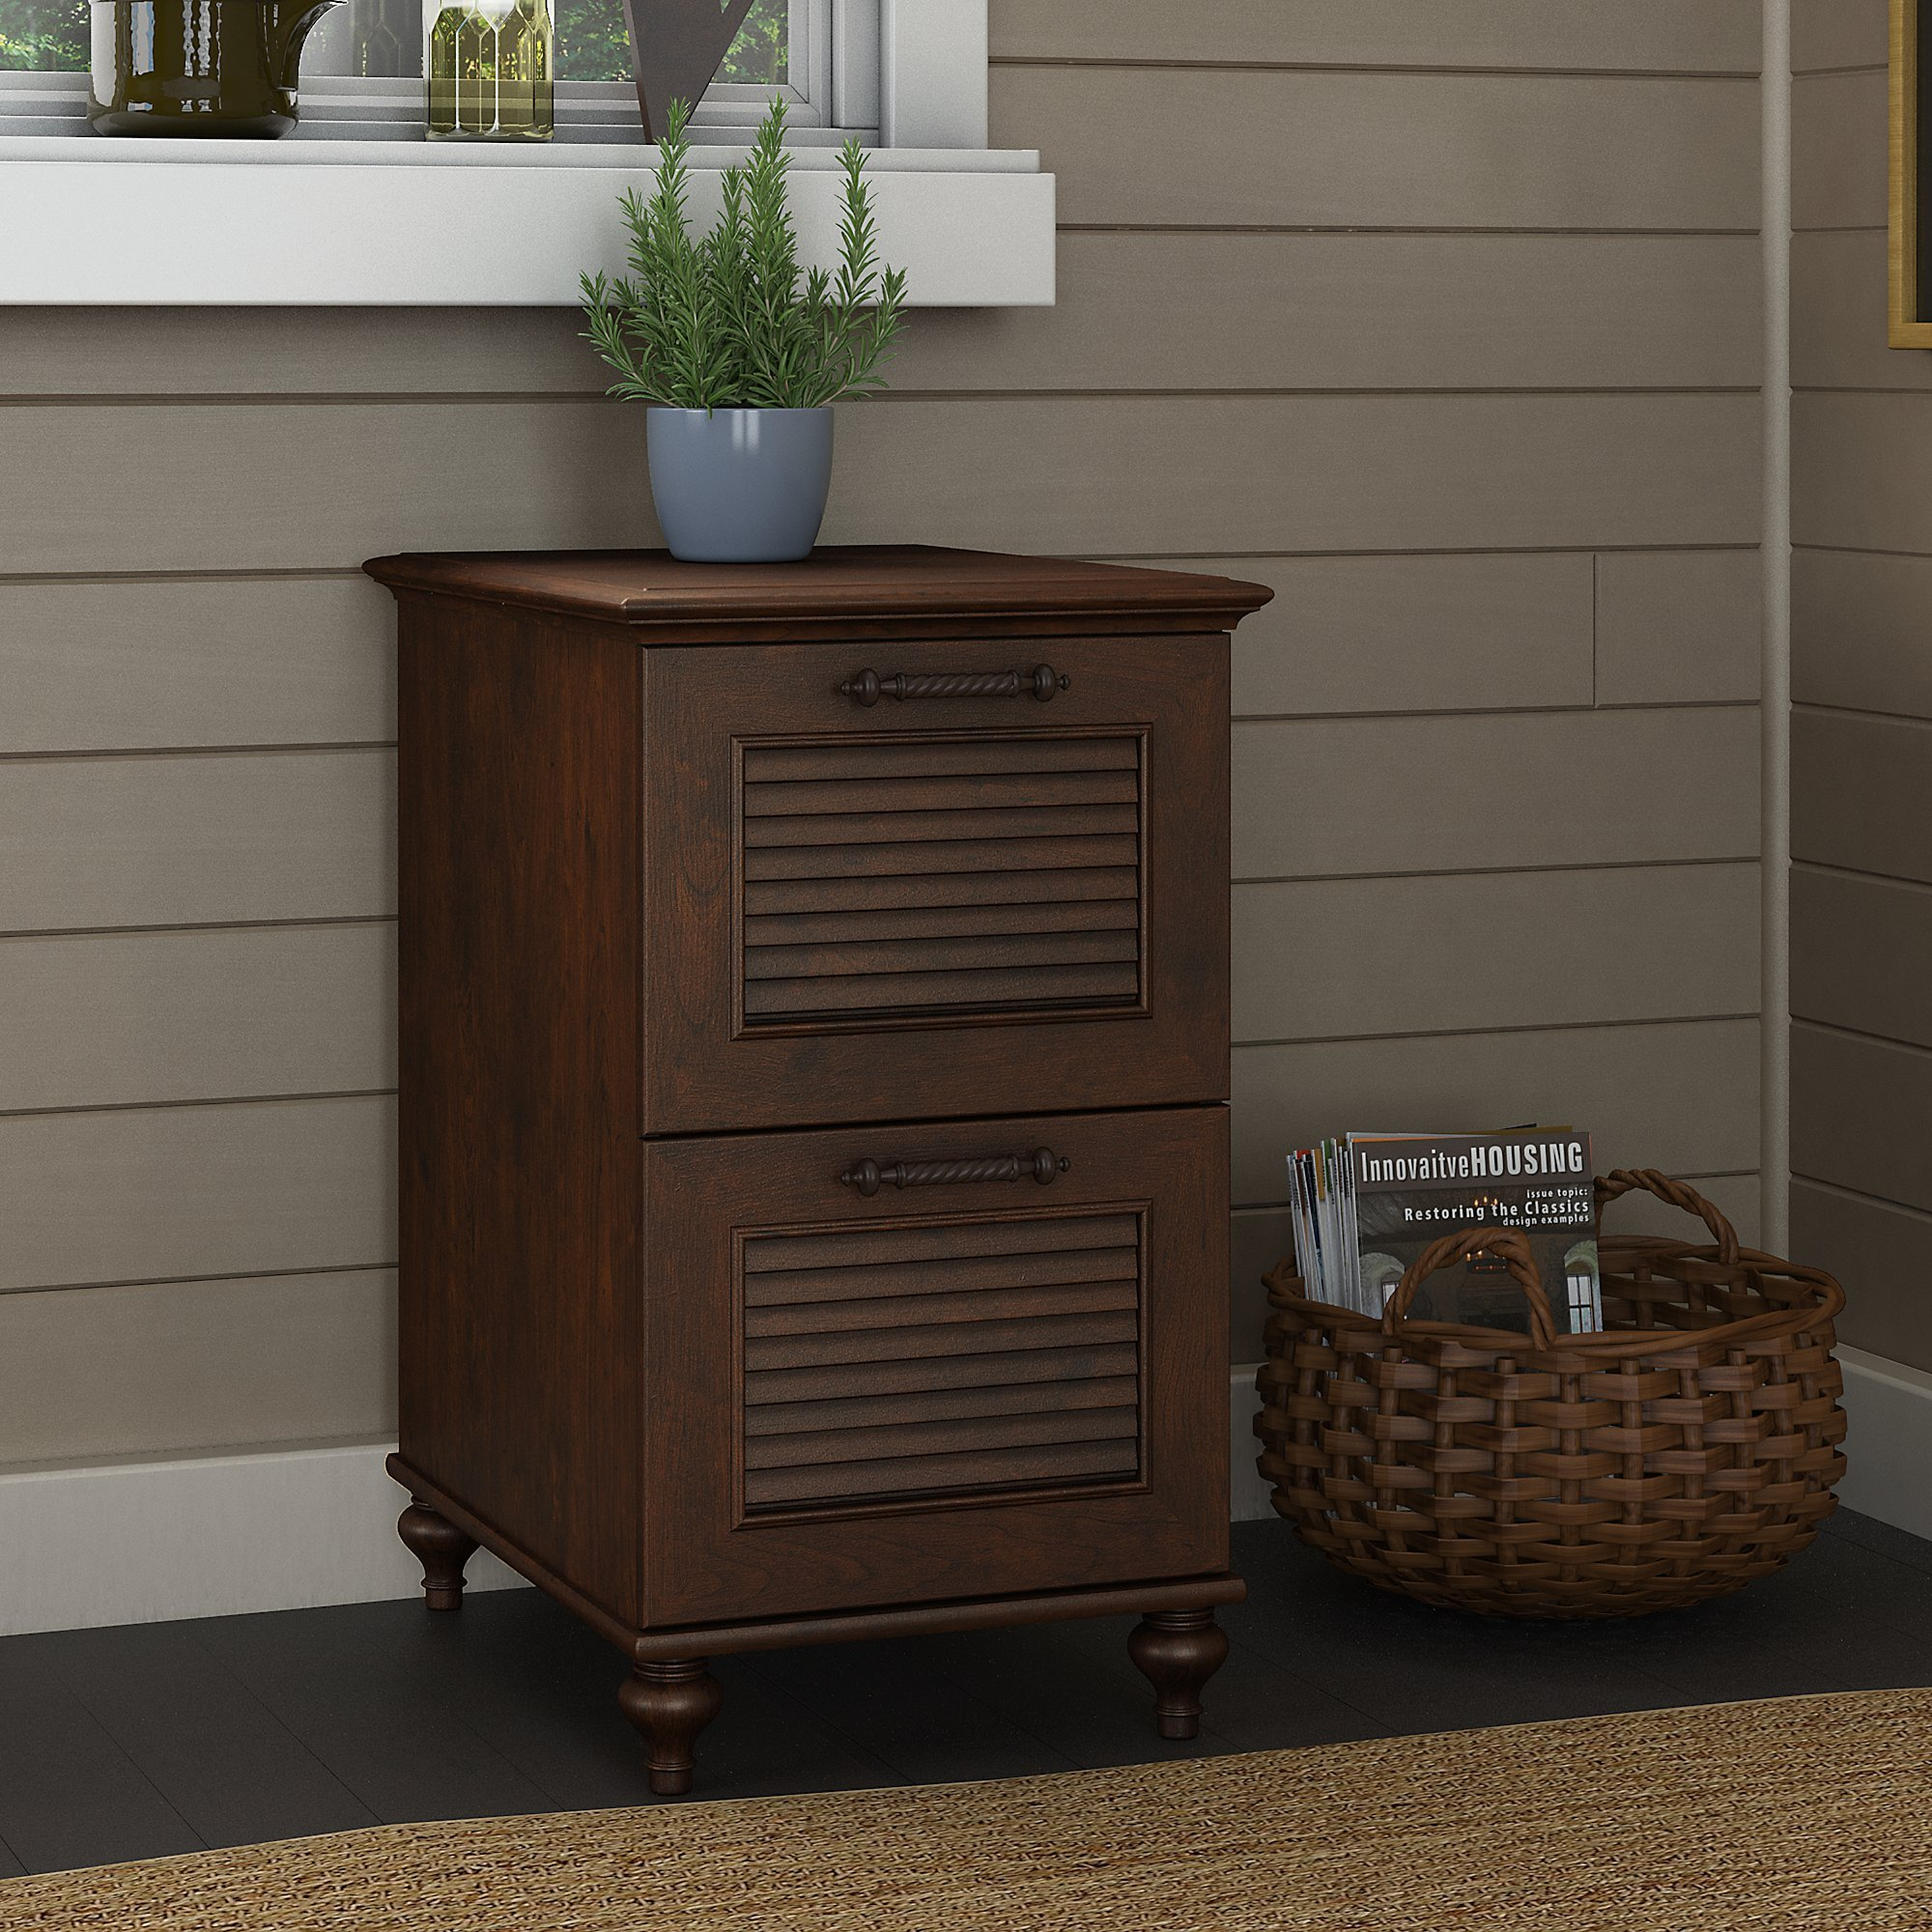 kathy ireland Home by Bush Furniture Volcano Dusk 2 Drawer File Cabinet in Coastal Cherry